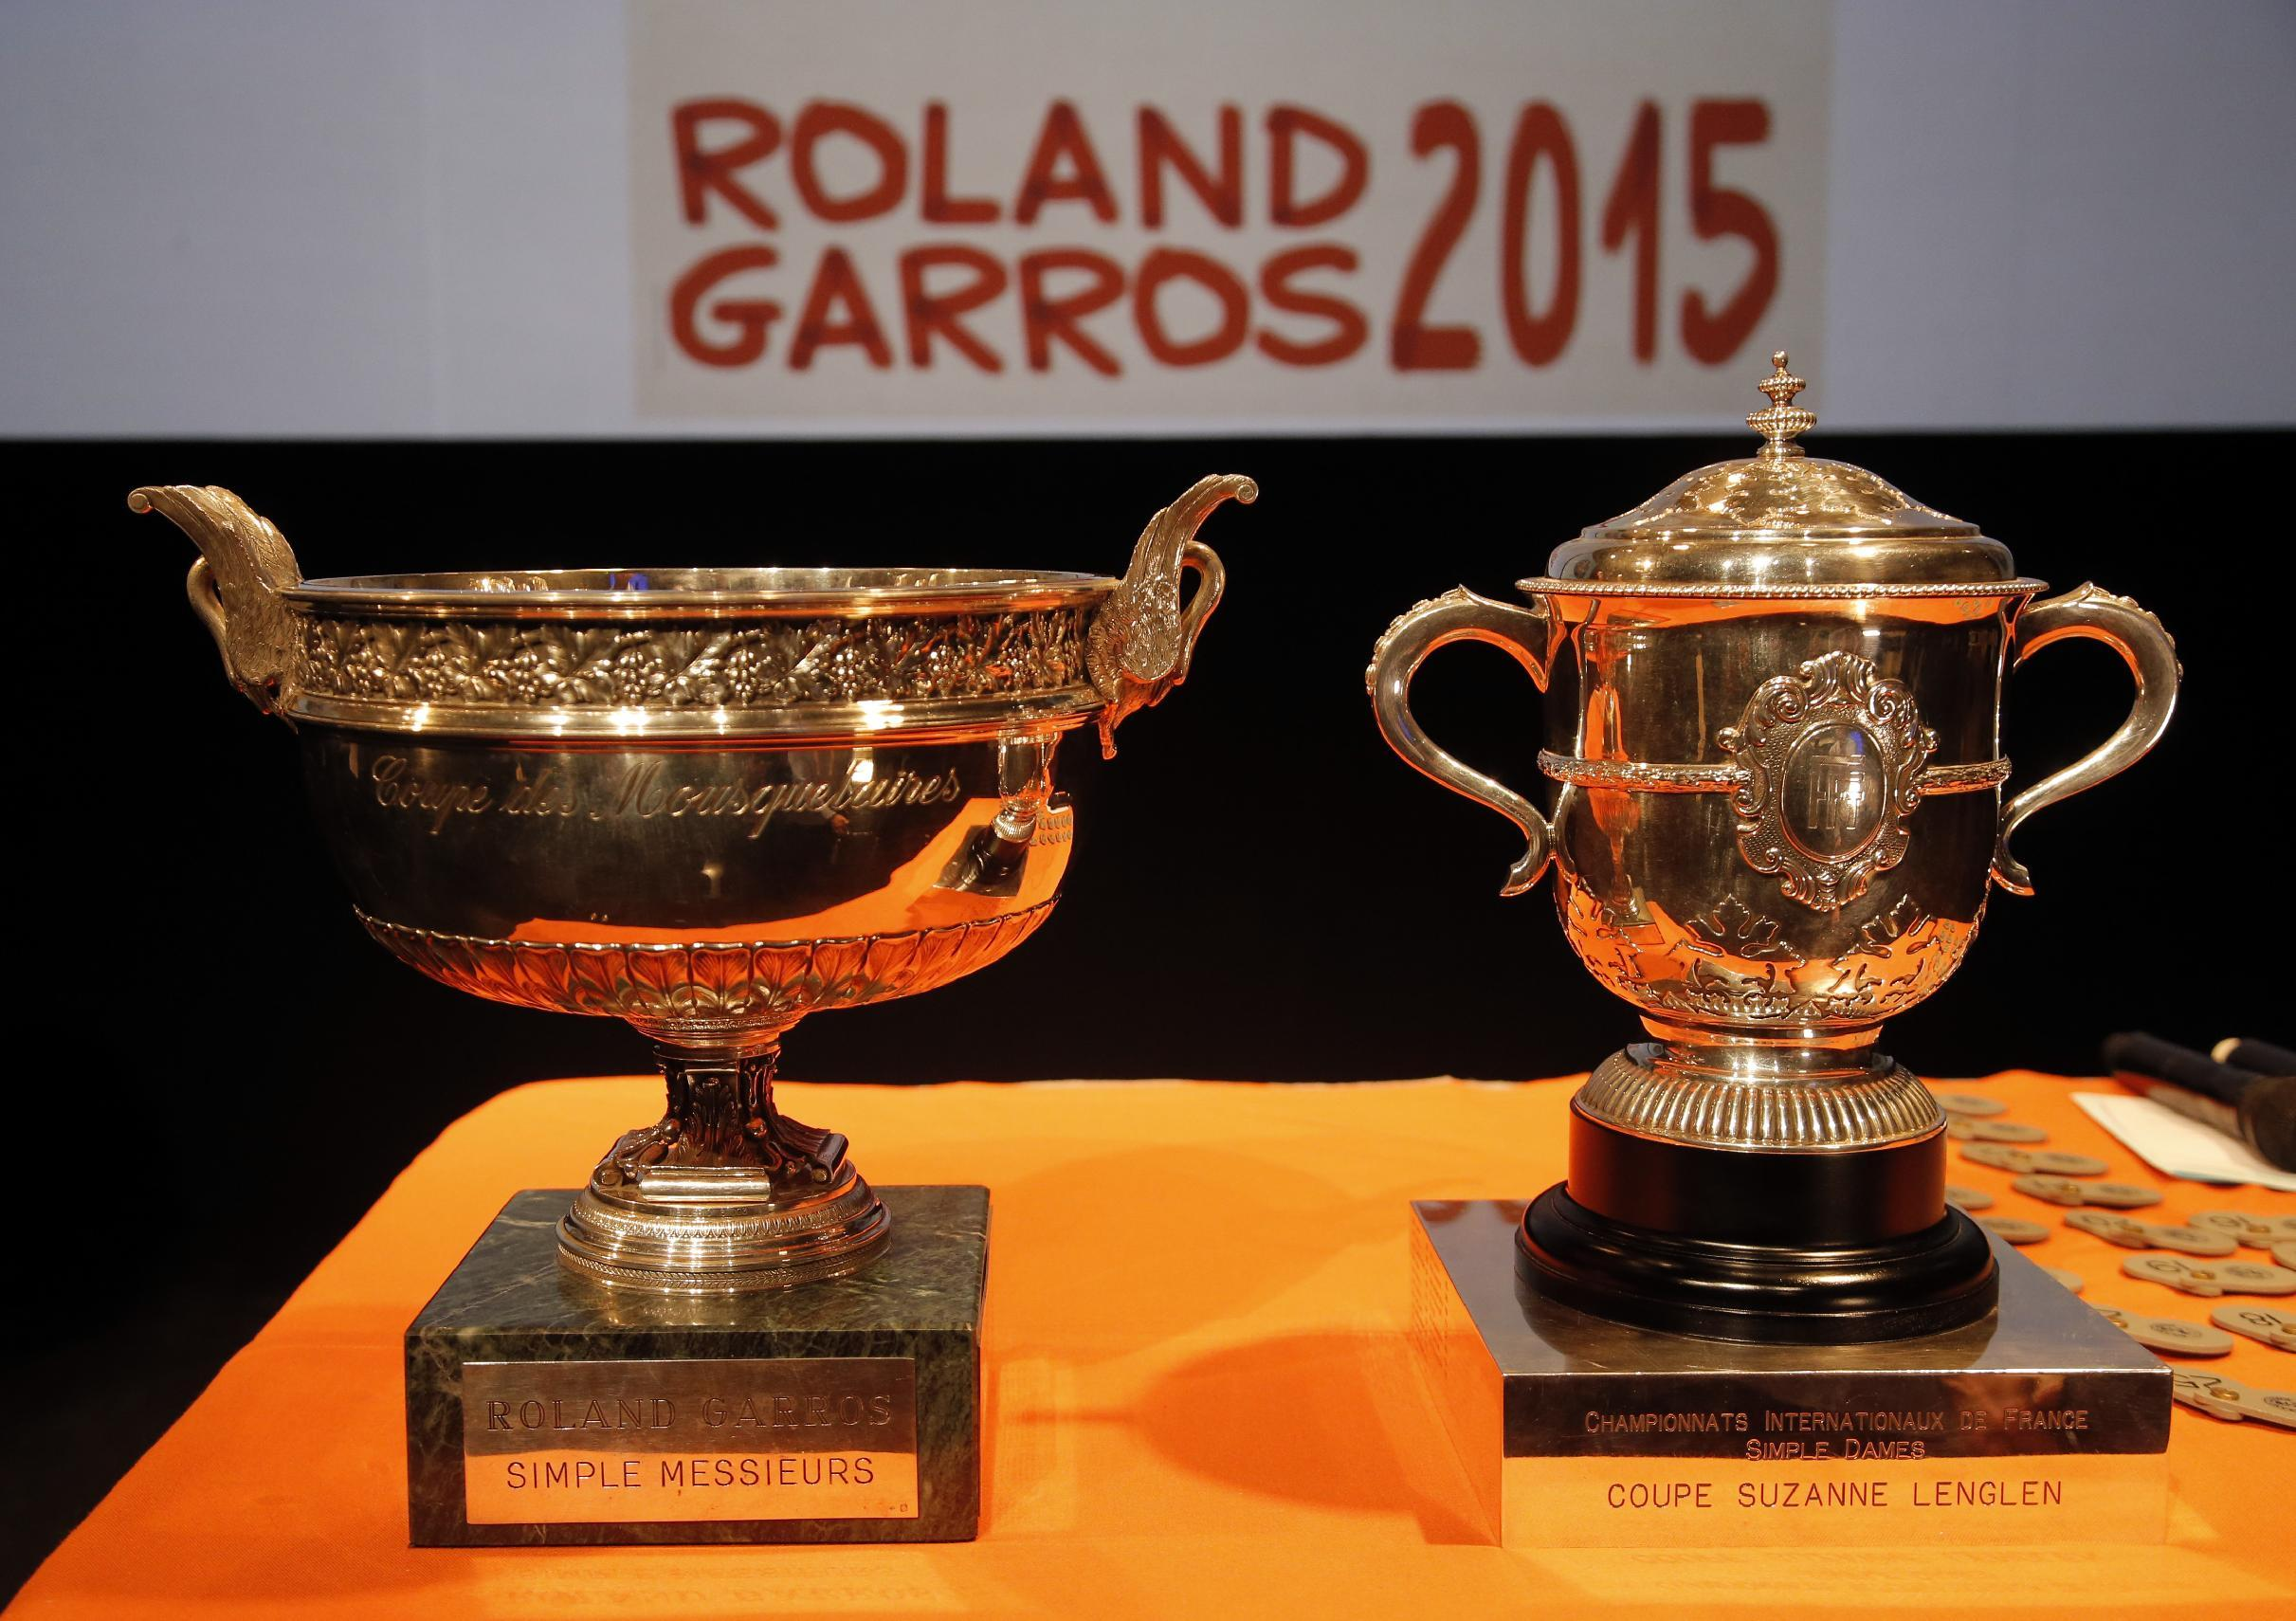 roland garros seedings may ask rafael nadal to beat. Black Bedroom Furniture Sets. Home Design Ideas